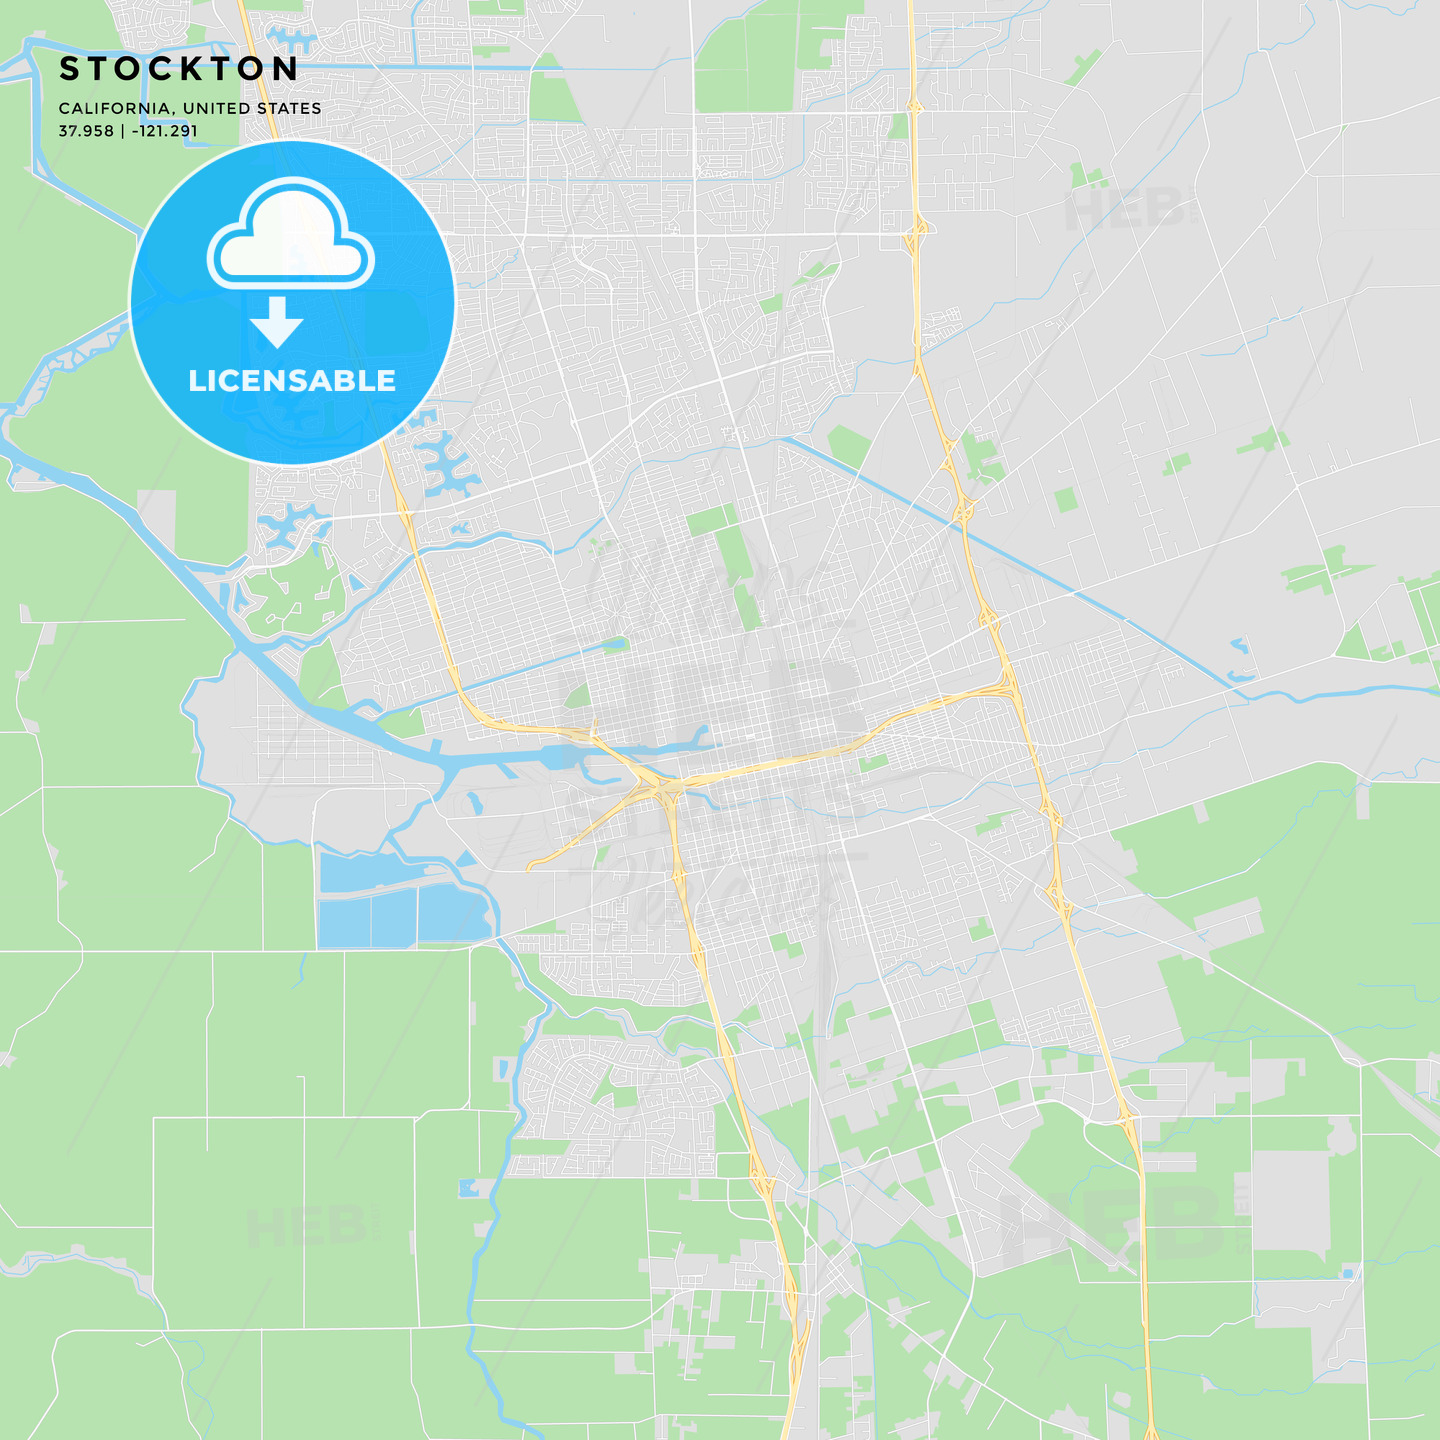 Printable street map of Stockton, California